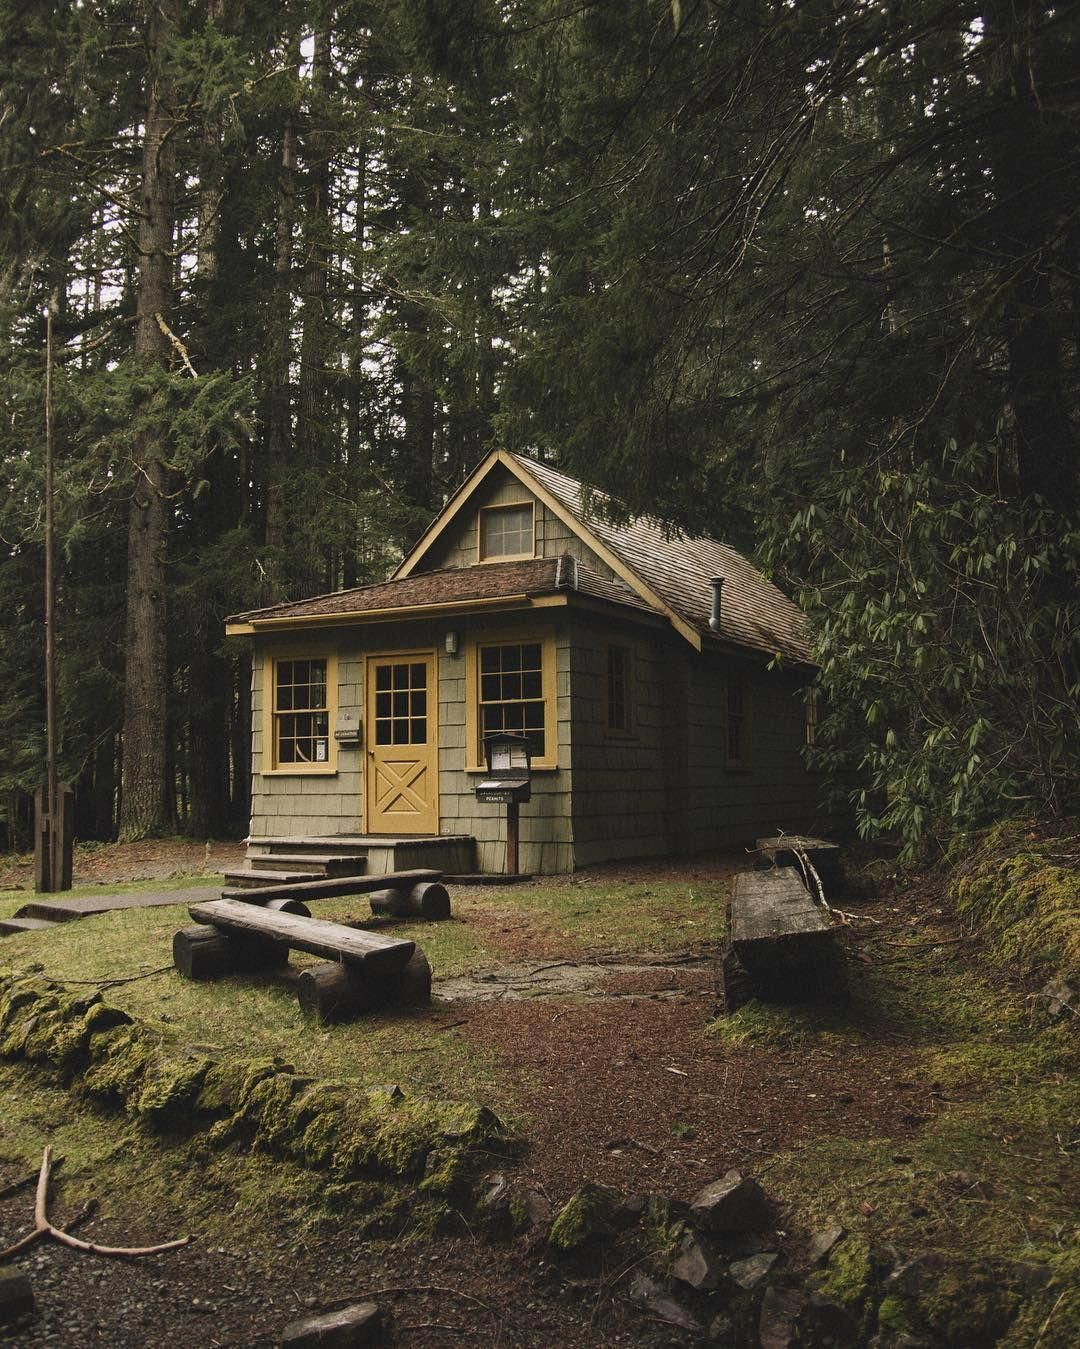 Cabins Small Cozy Cabins Cabin P Rn Album On Imgur Cabins Cabin Homes House In The Woods Cabins And Cottages